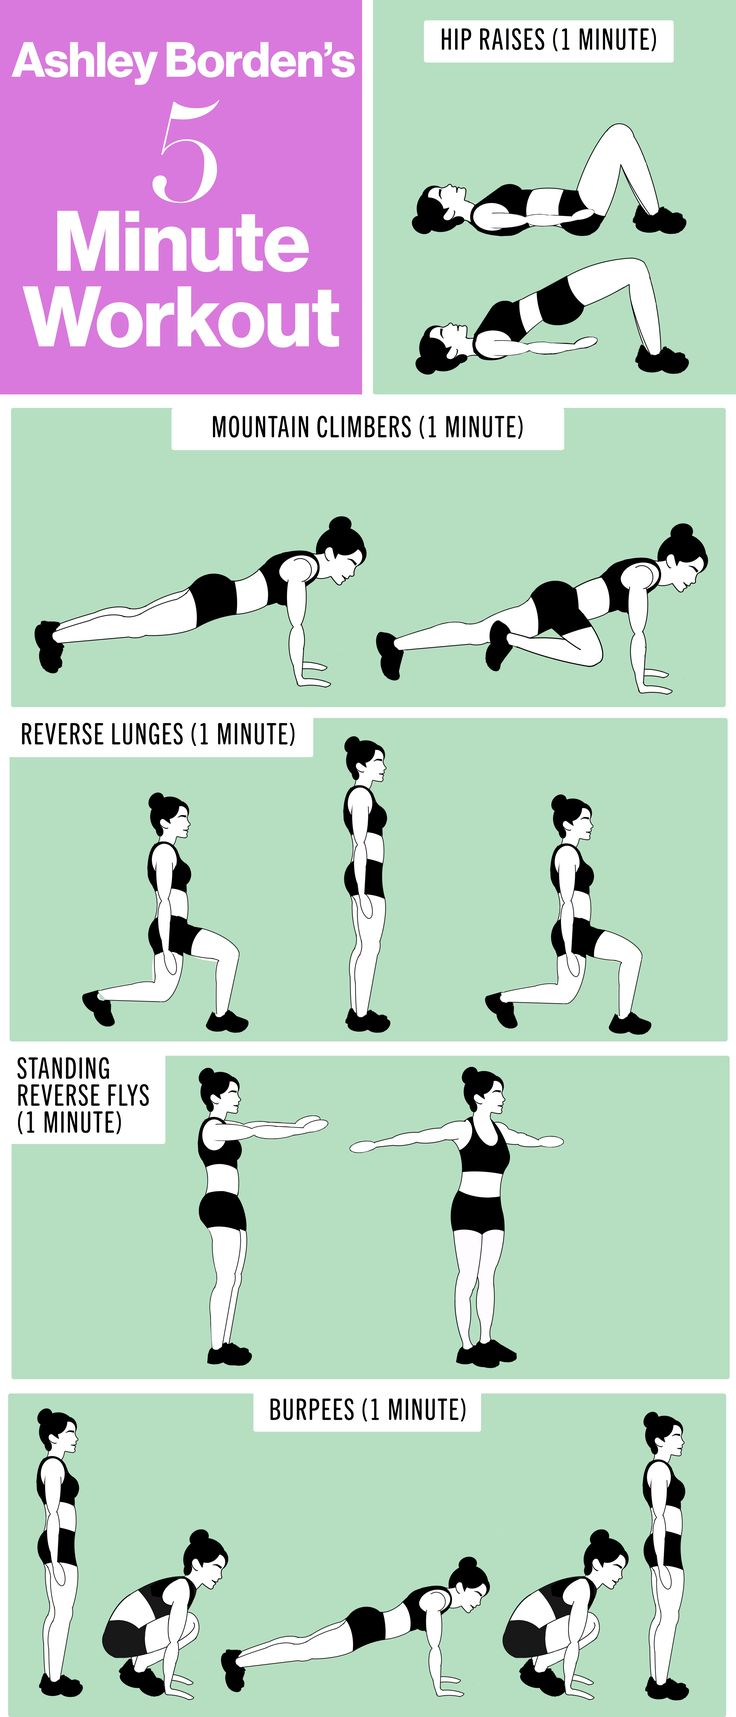 Steal these quick workout moves the next time you're short on time, or combine a few to make a slightly longer session.